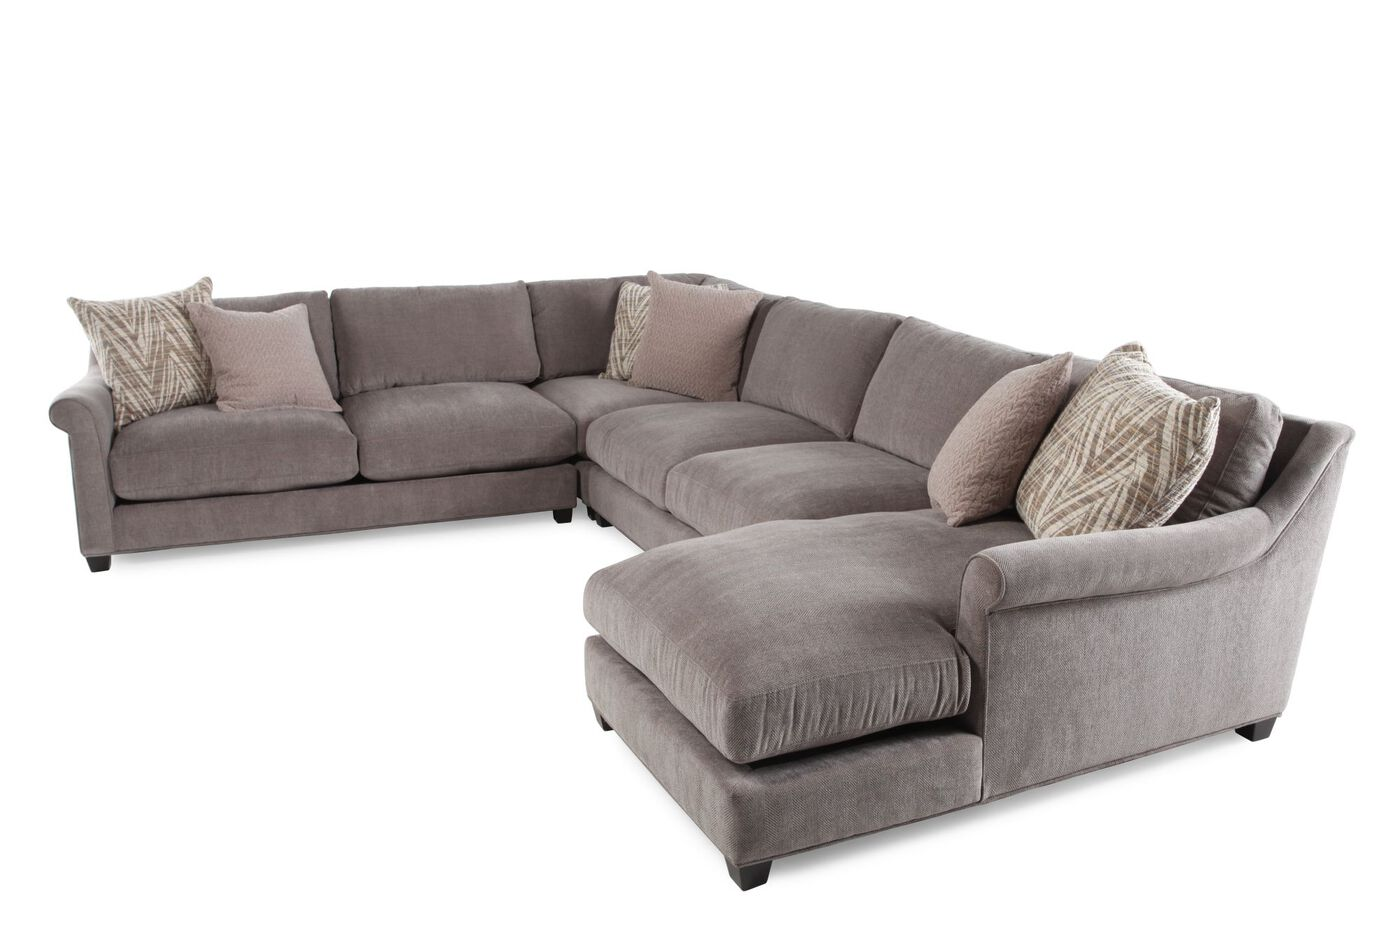 Four Piece Microfiber Sectional In Milk Chocolate